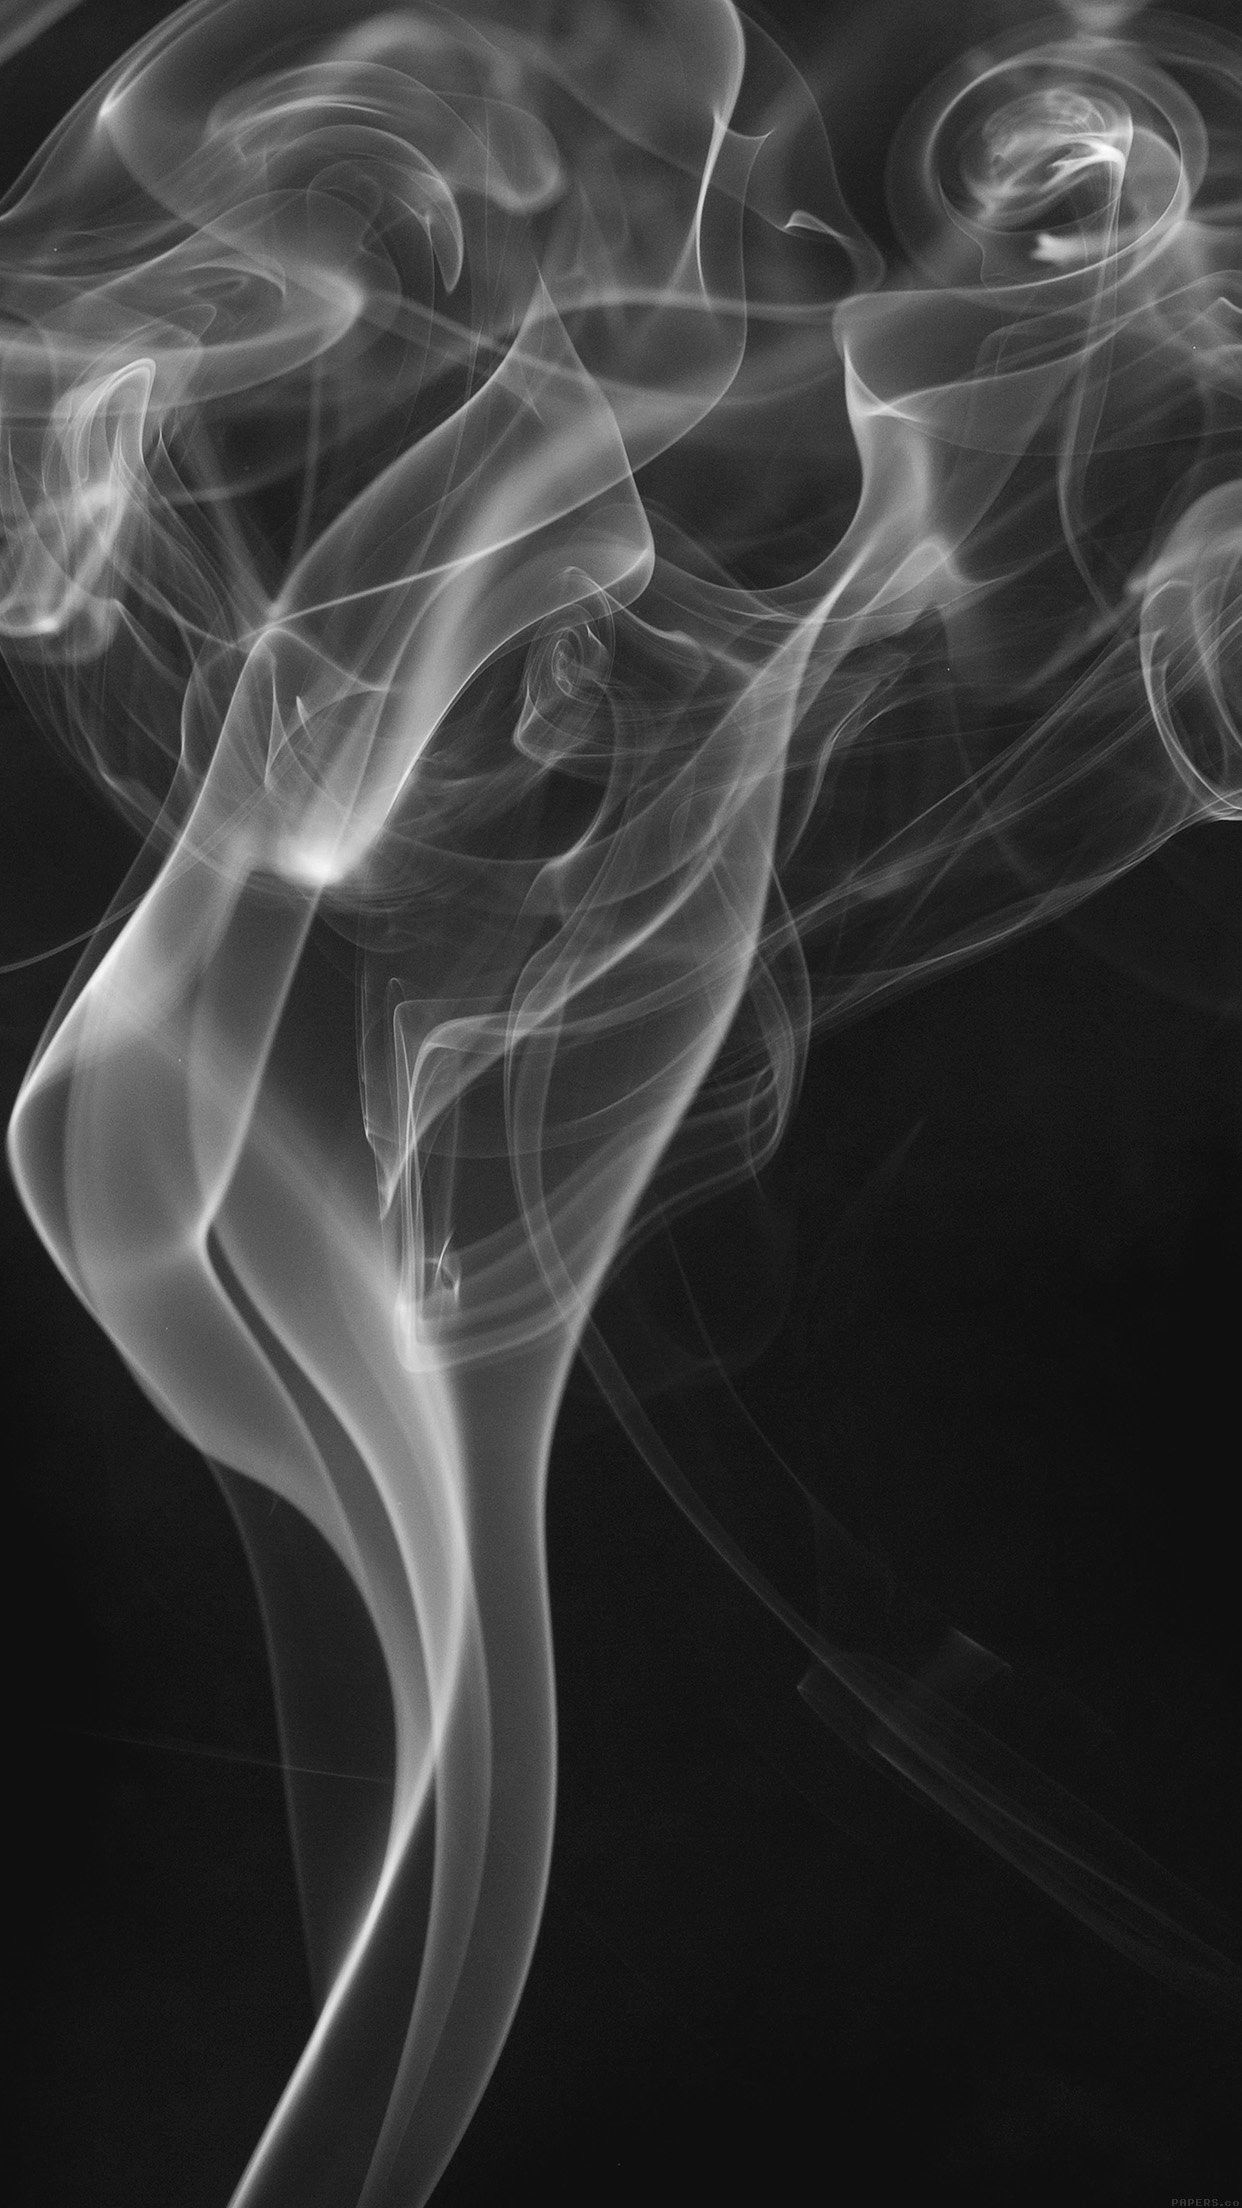 Smoke Iphone Wallpapers Top Free Smoke Iphone Backgrounds